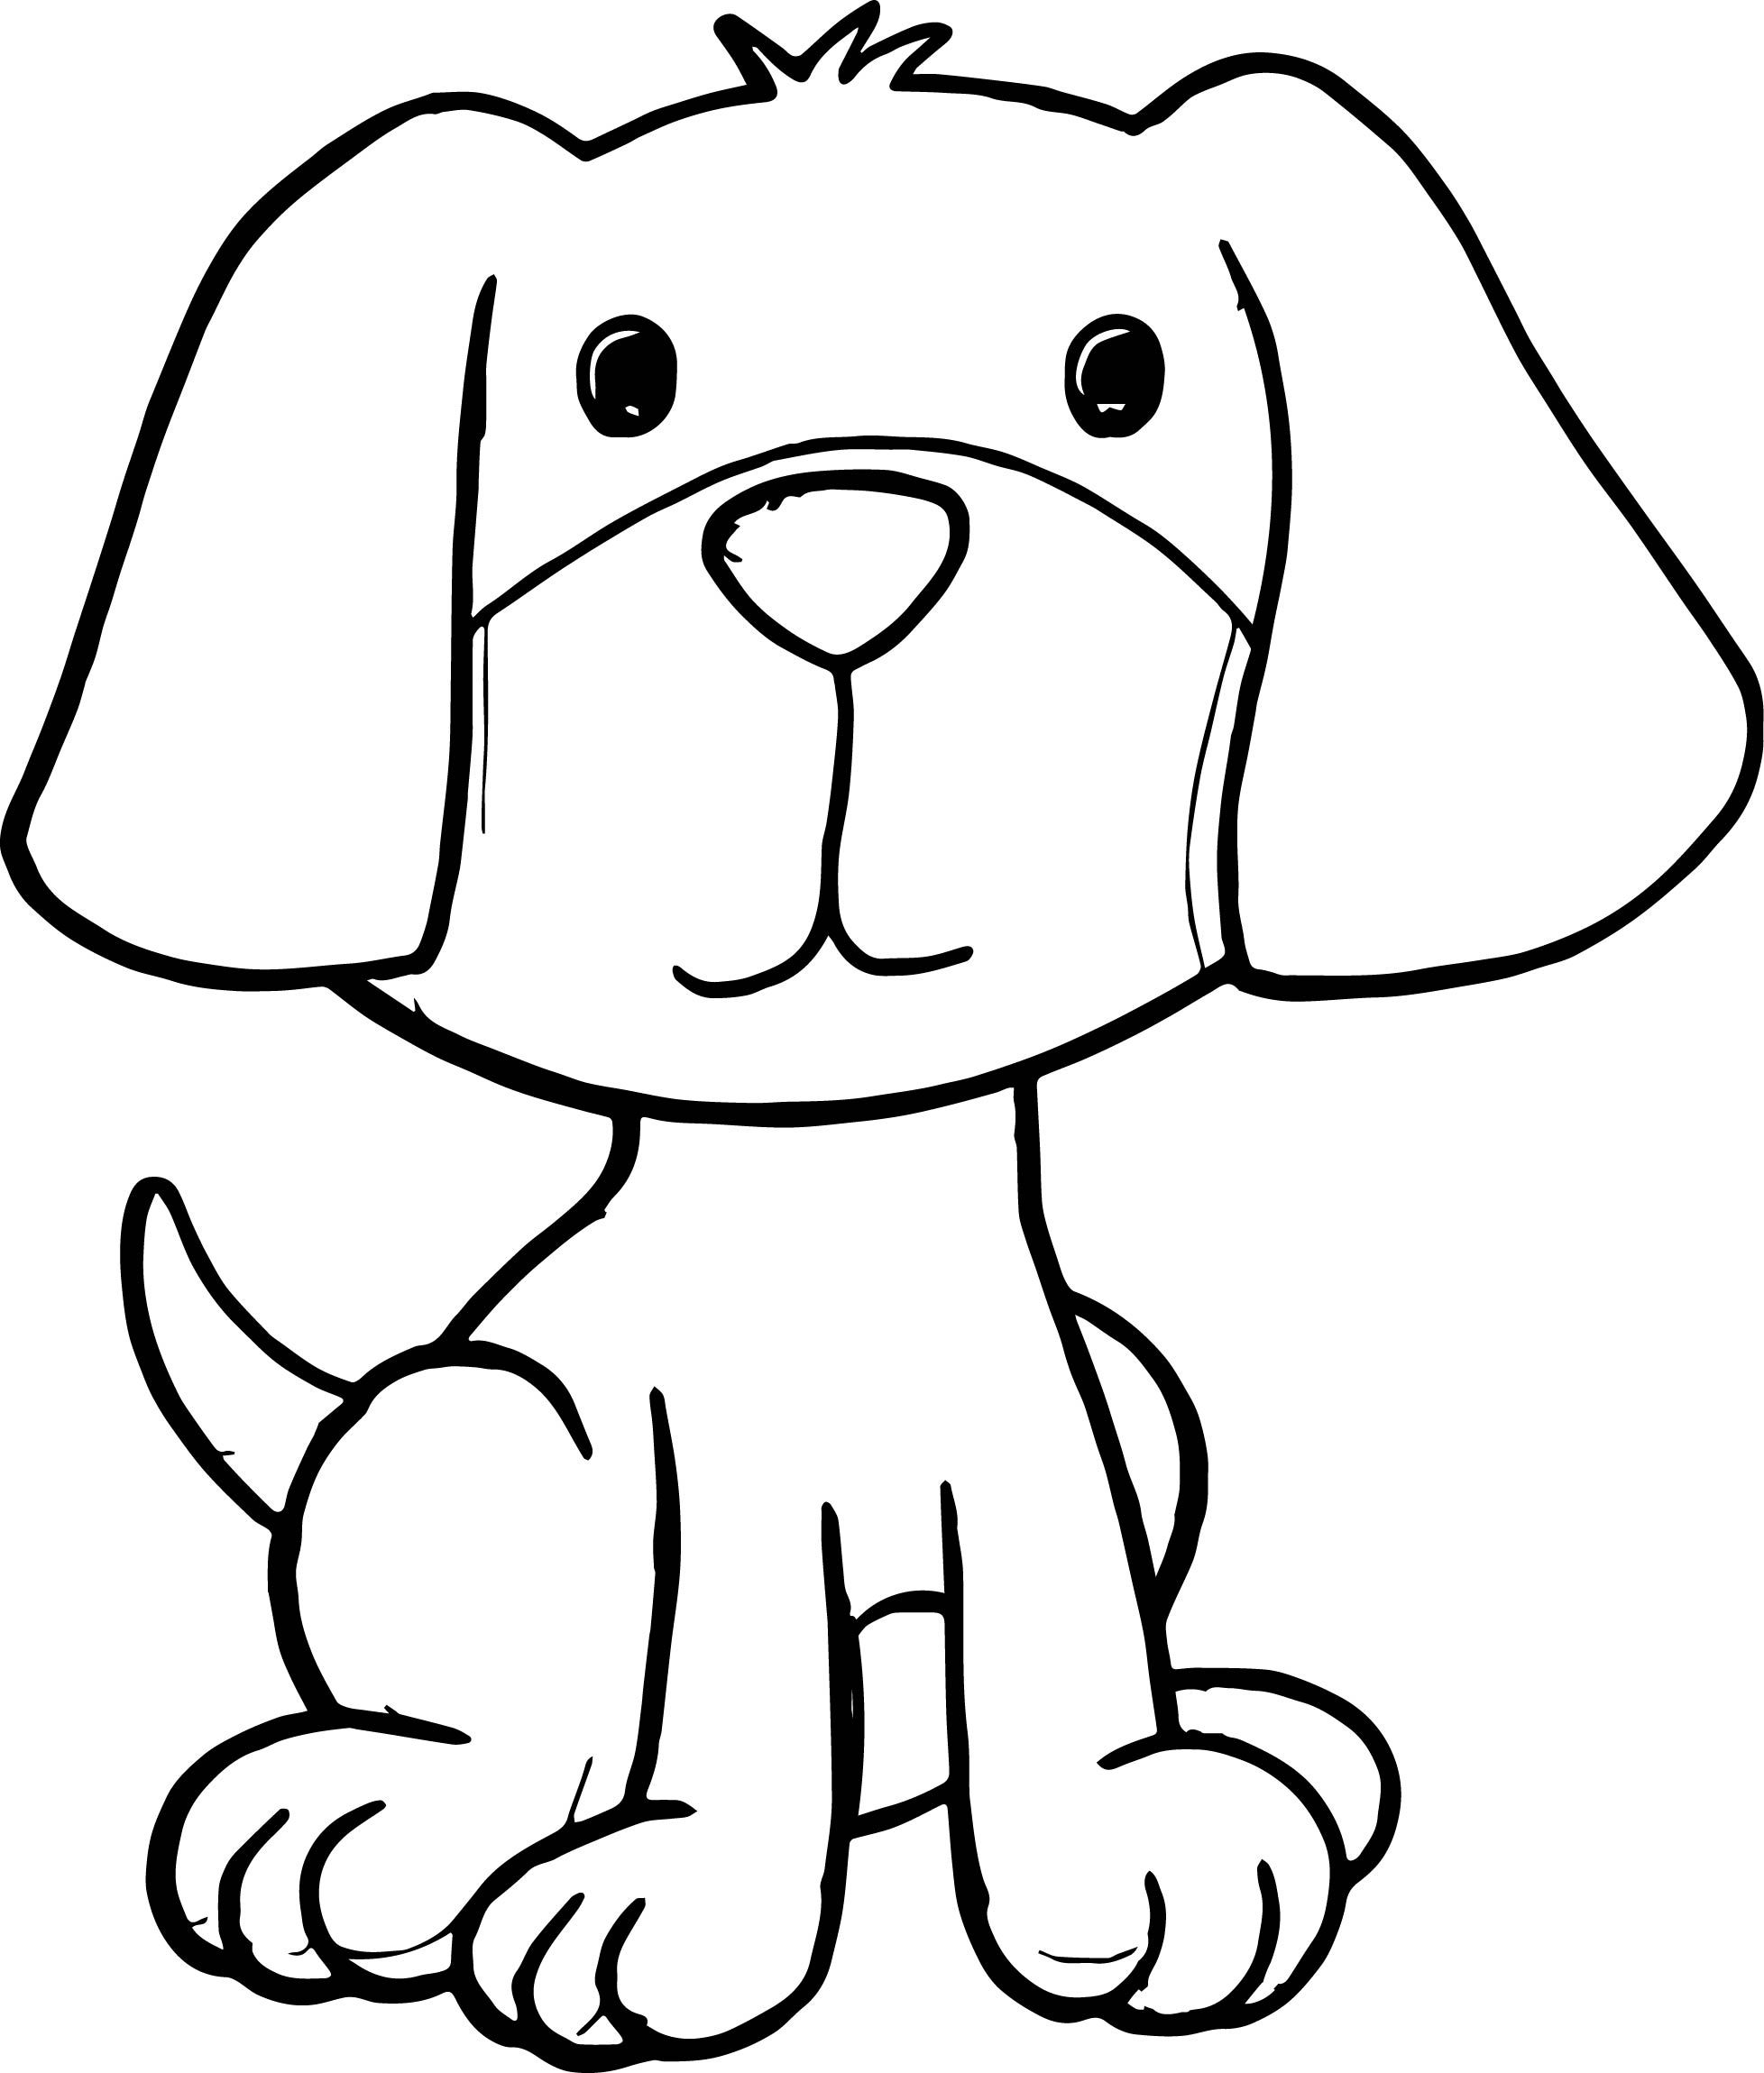 Cool Puppy Pictures Of Cute Cartoon Puppies Dog Puppy Coloring Page